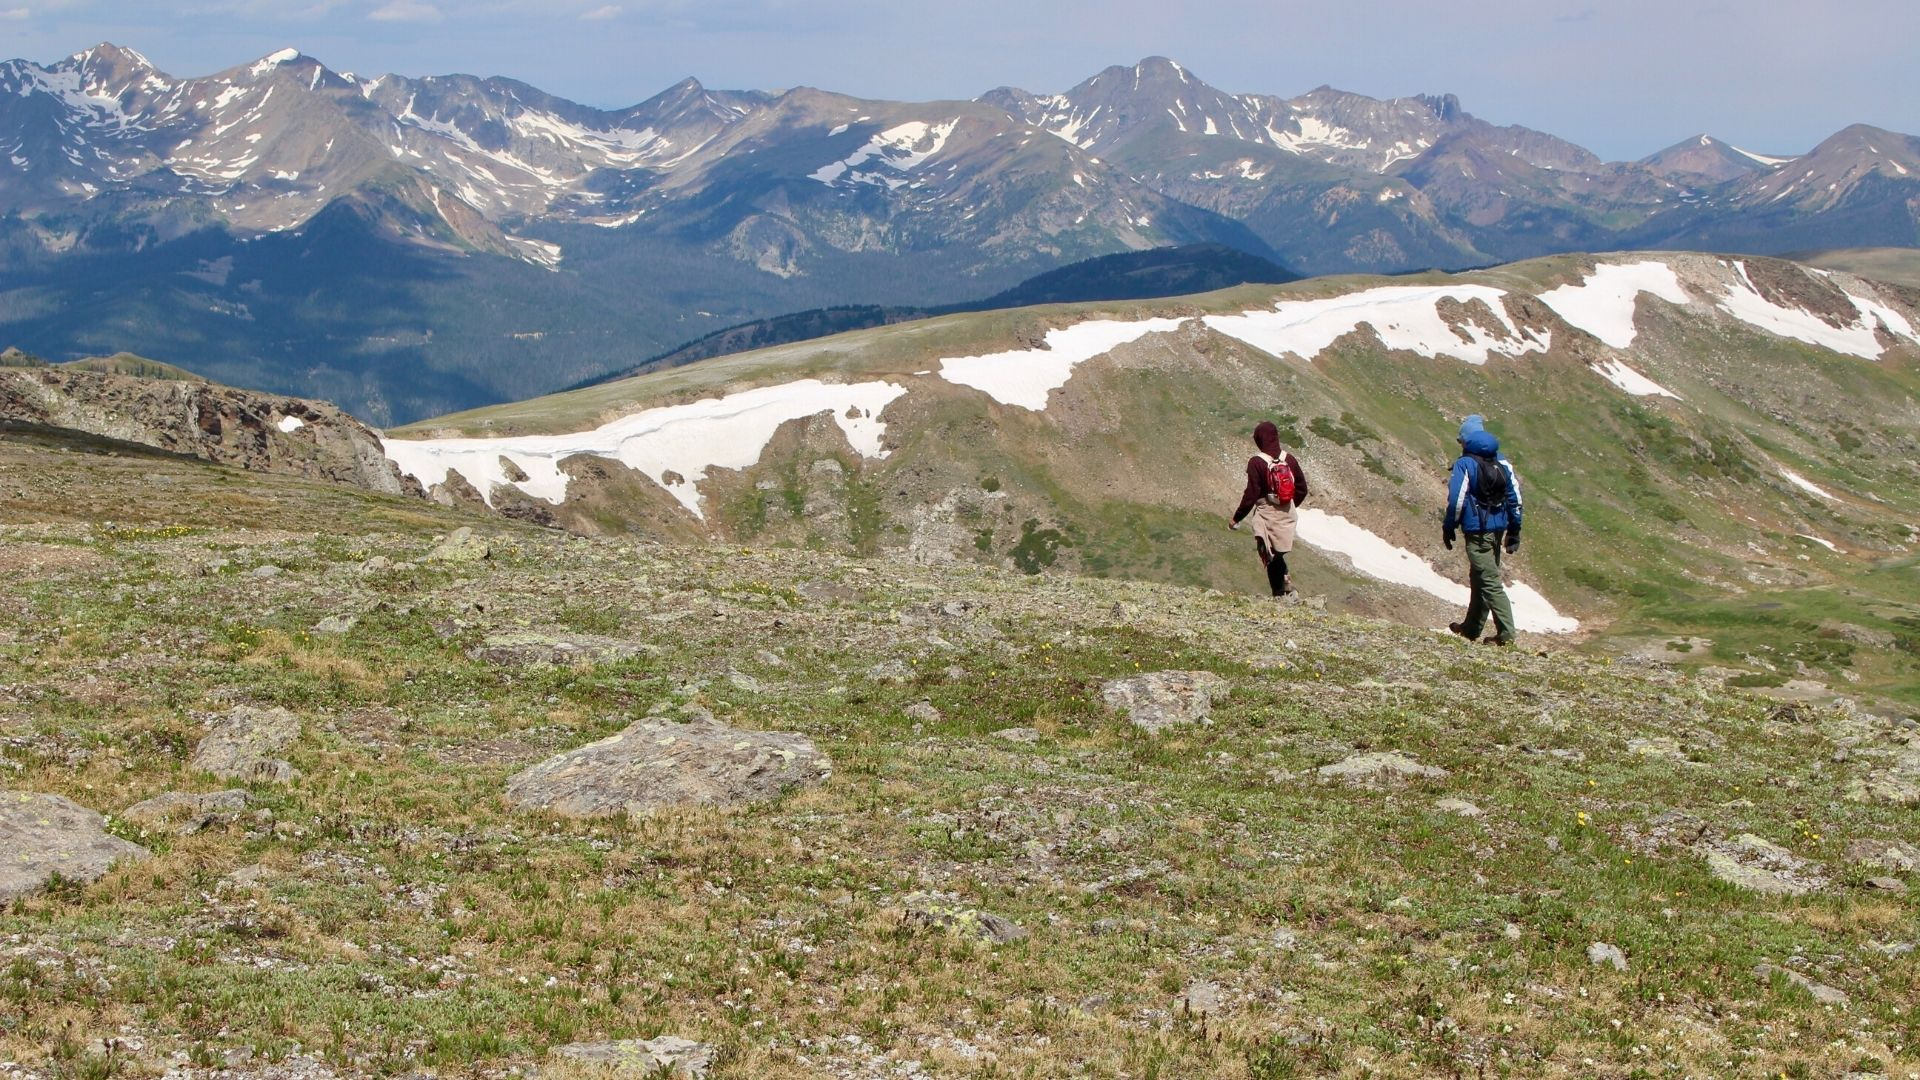 Hikers at Rocky Mountain National Park